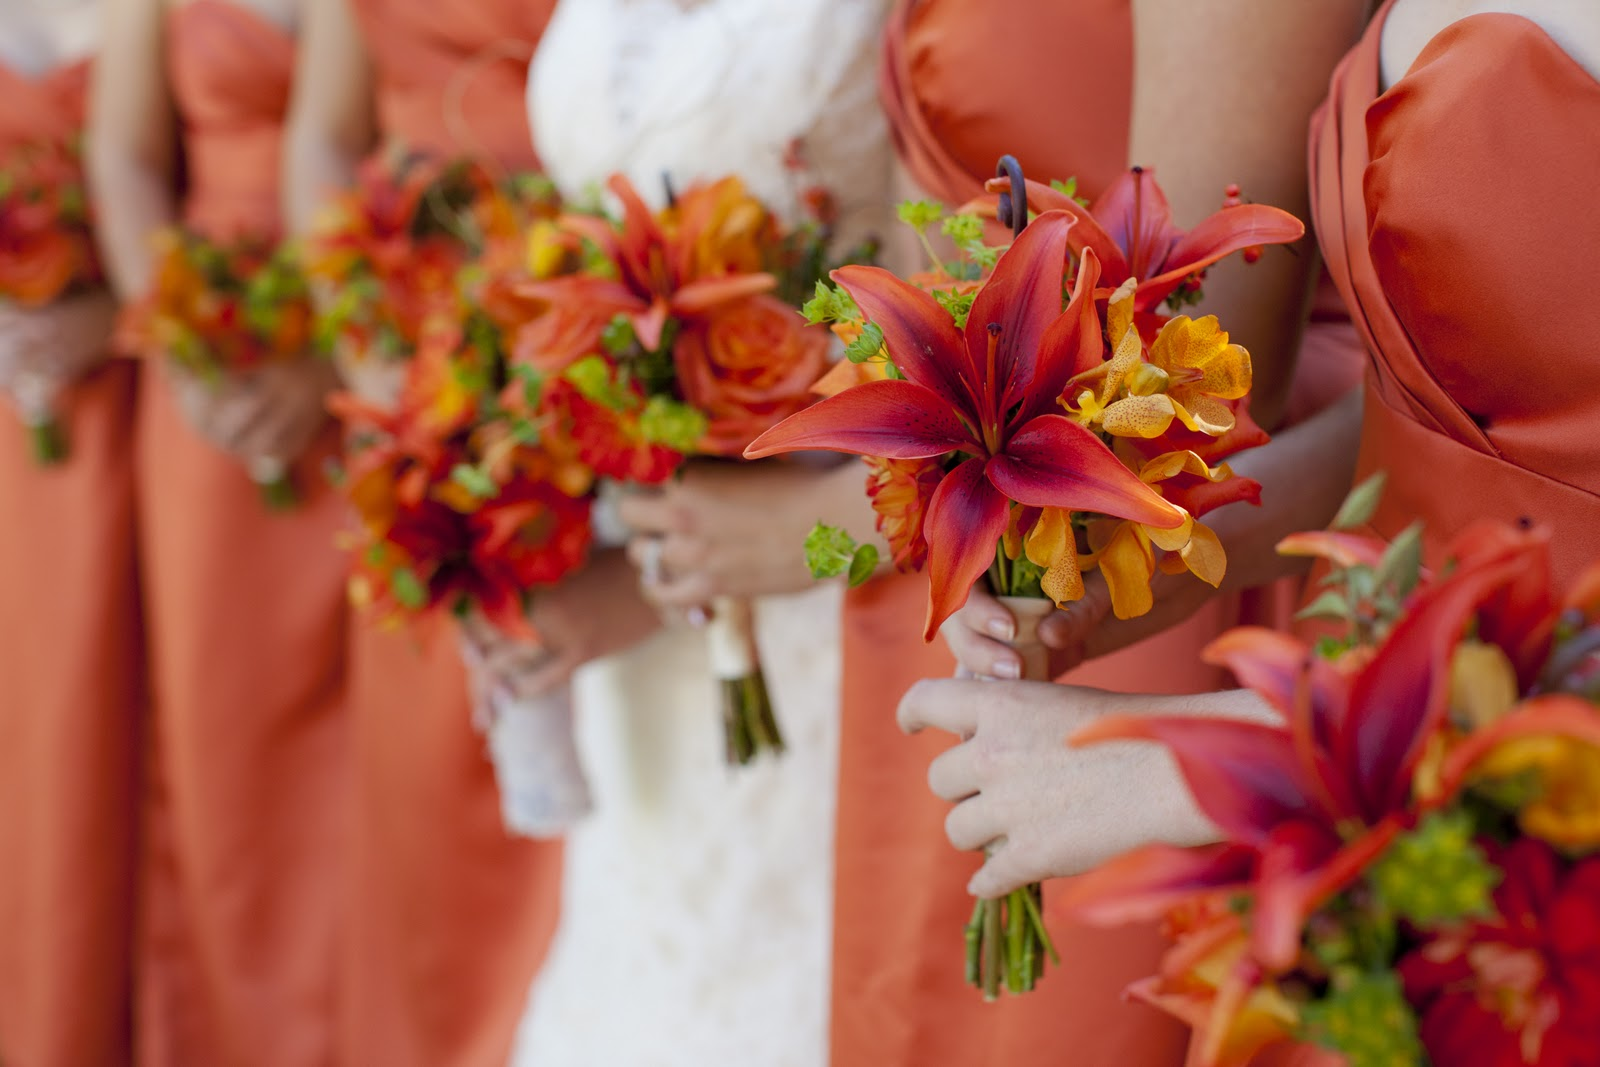 5 Key Elements To Consider While Choosing Wedding Flowers